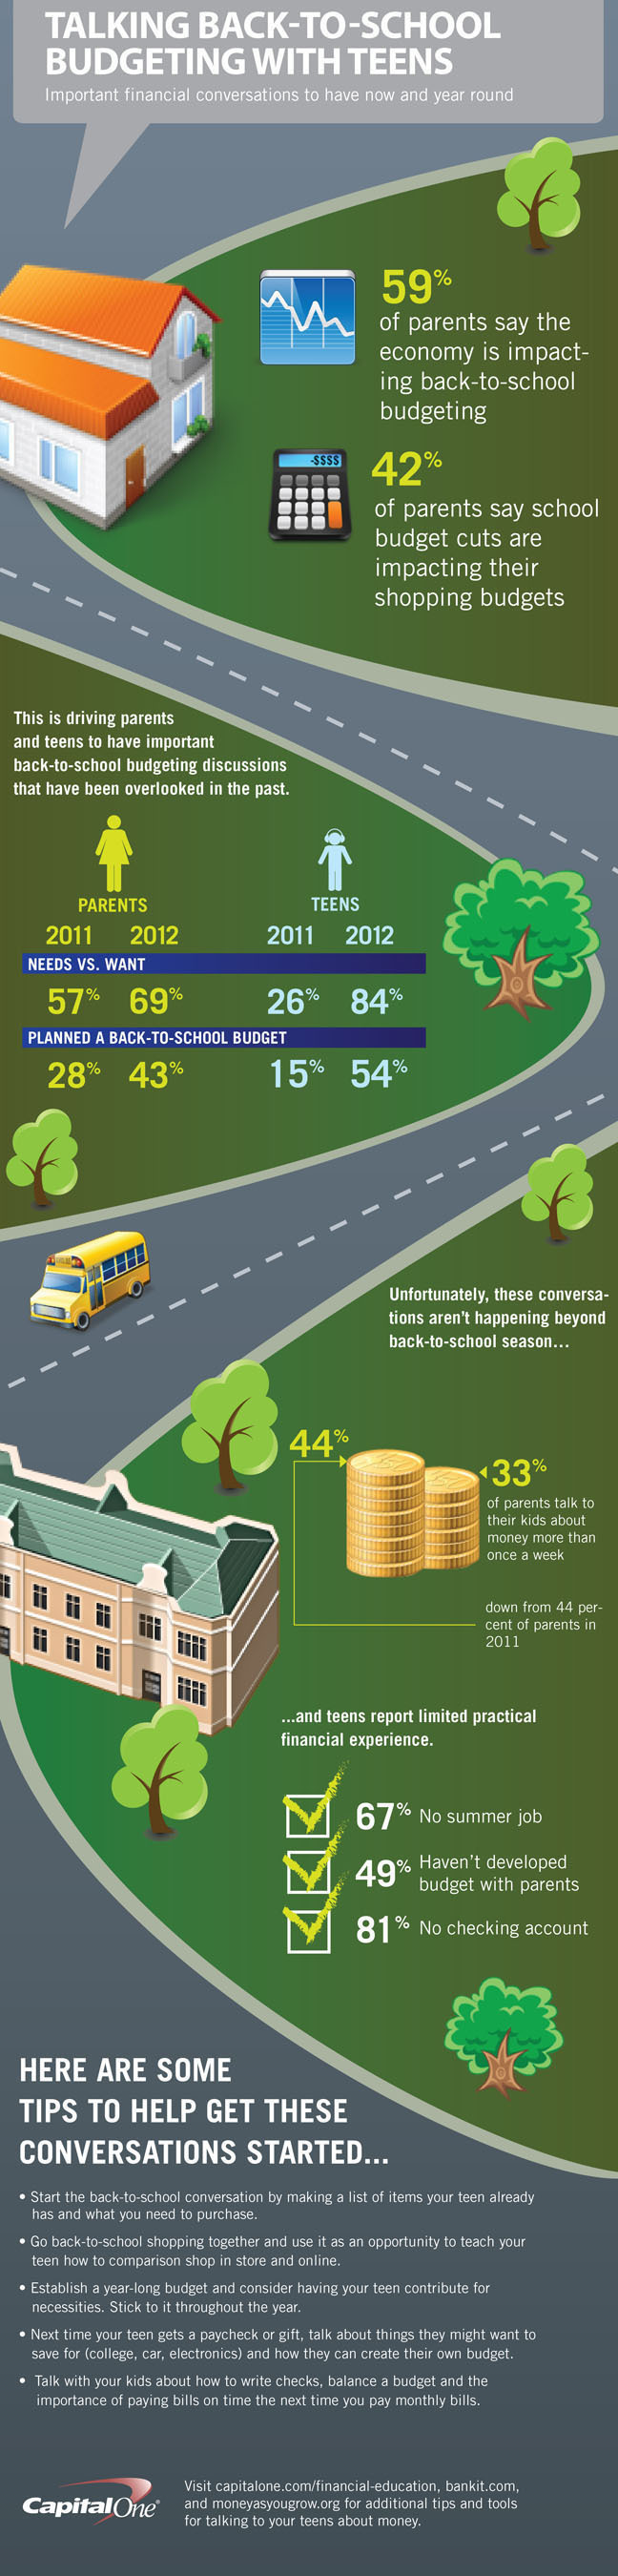 Capital One annual back-to-school survey.  (PRNewsFoto/Capital One)